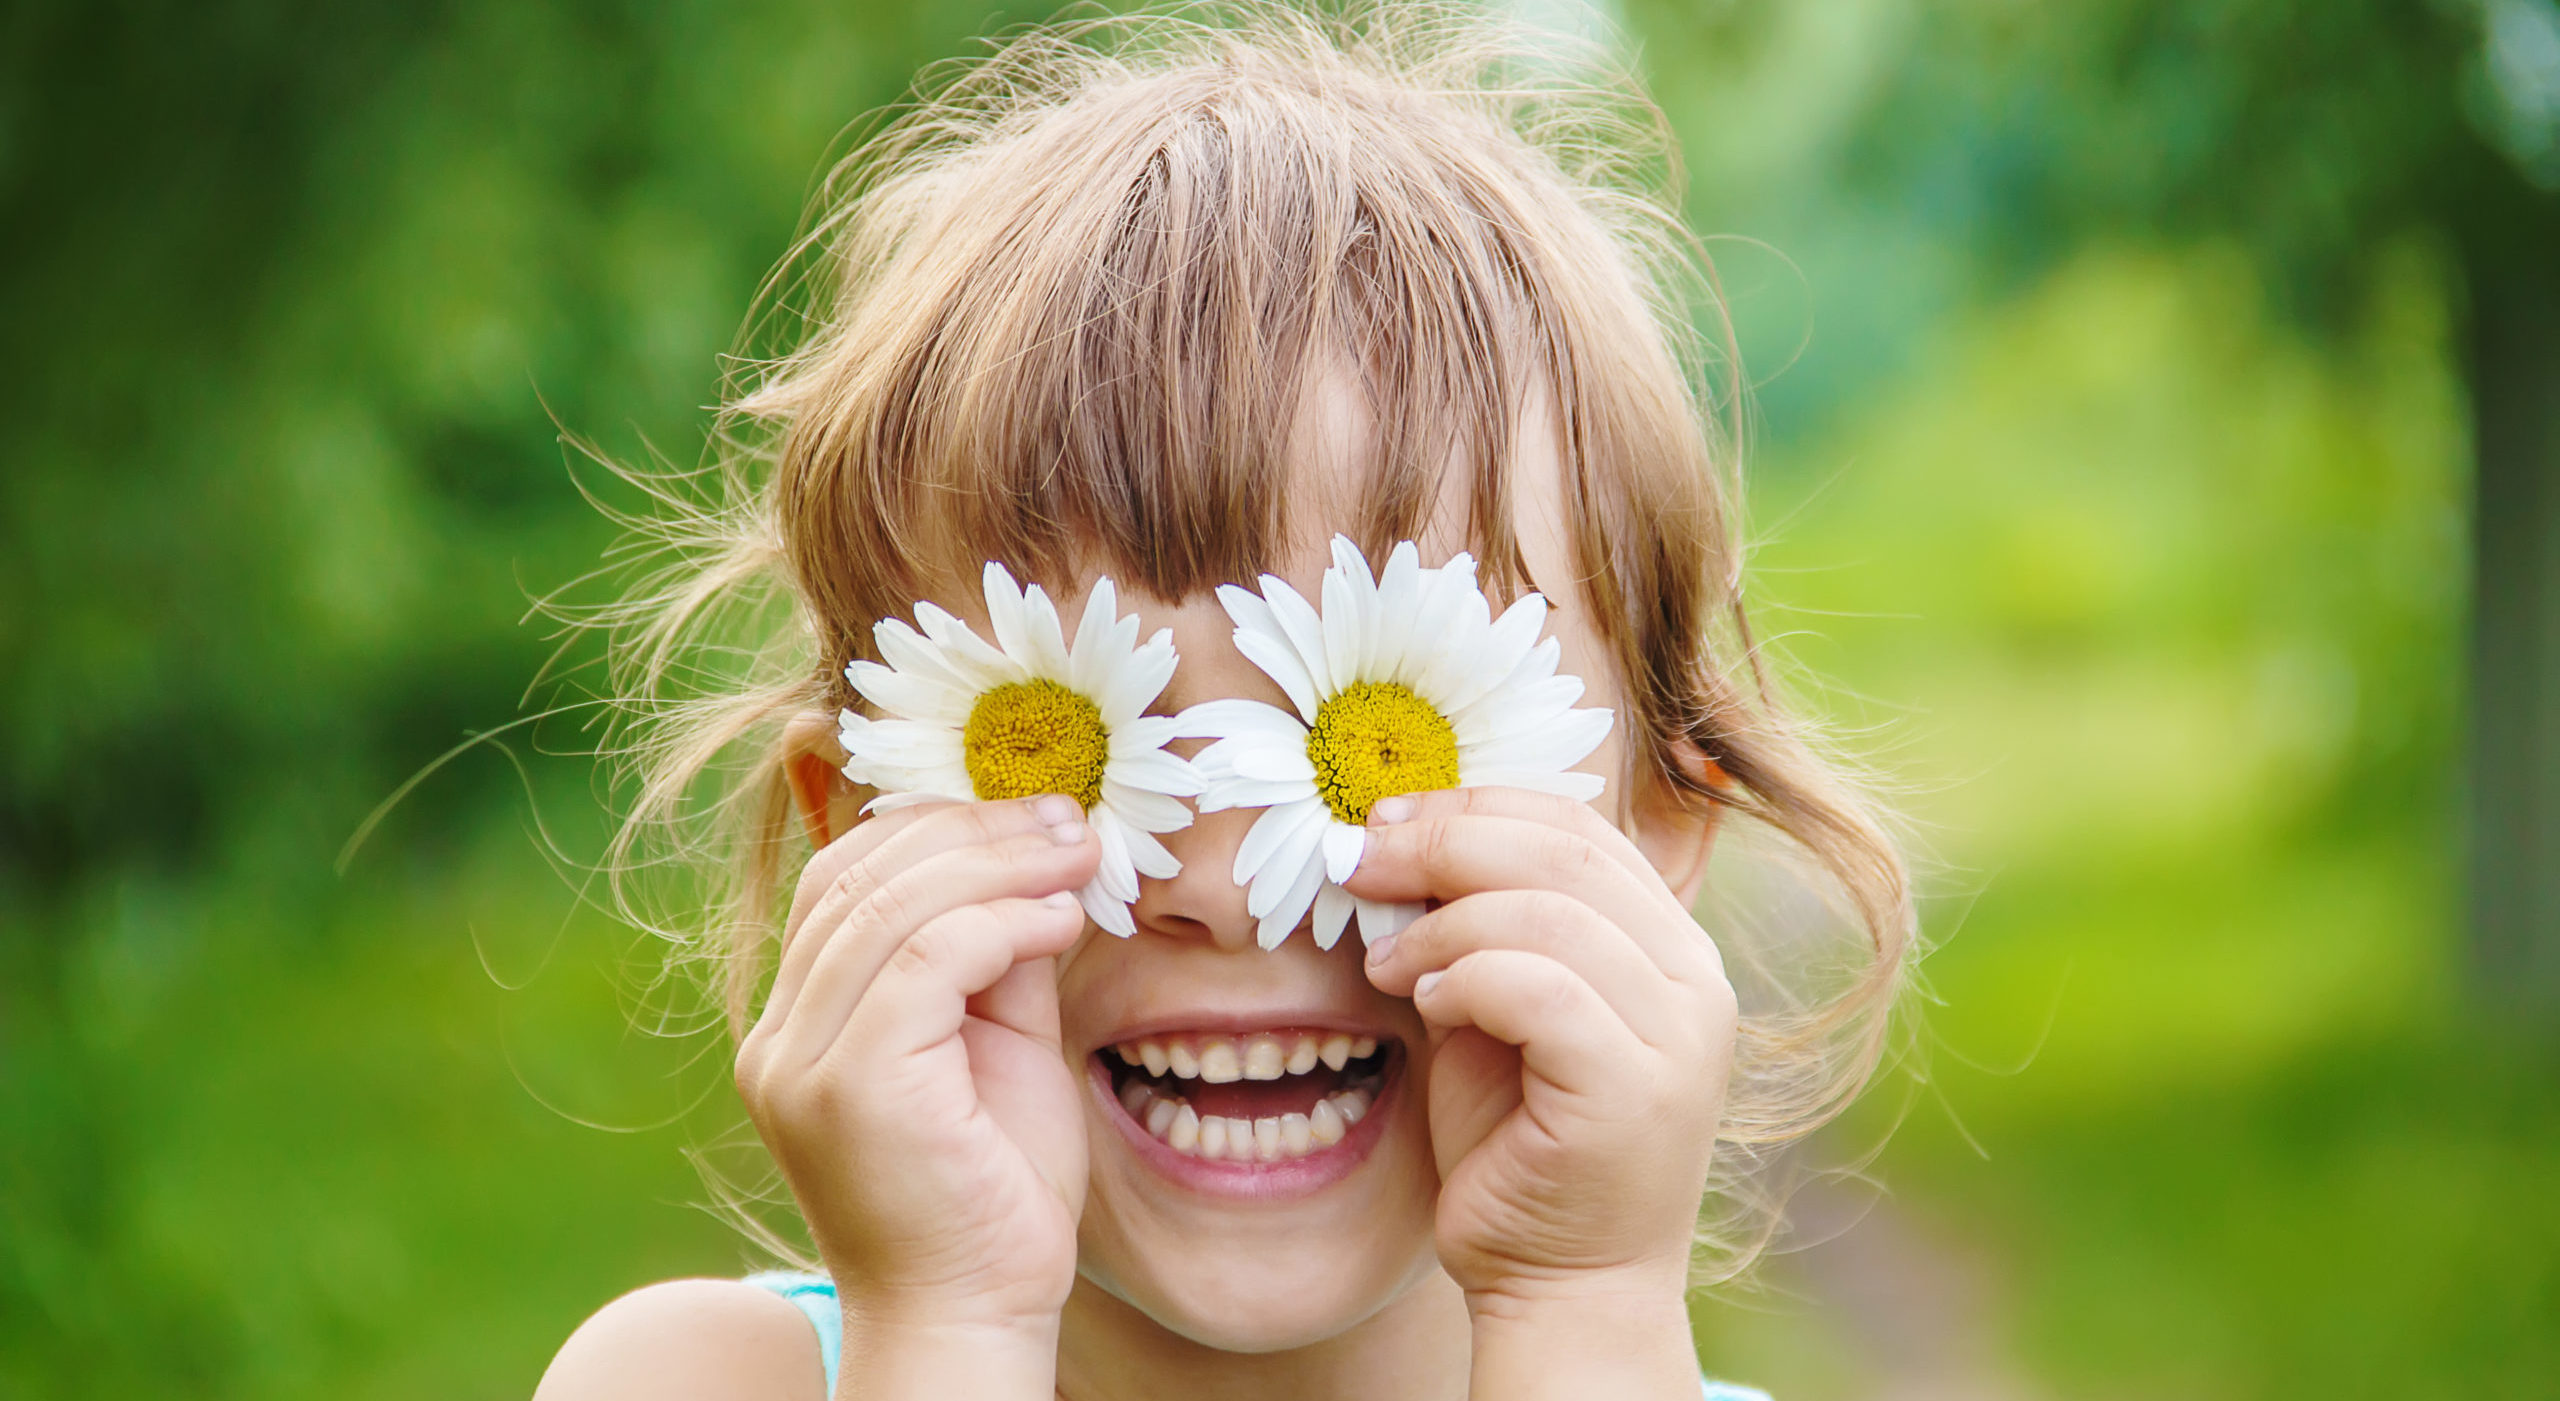 Child holding chamomile flowers in front of her eyes